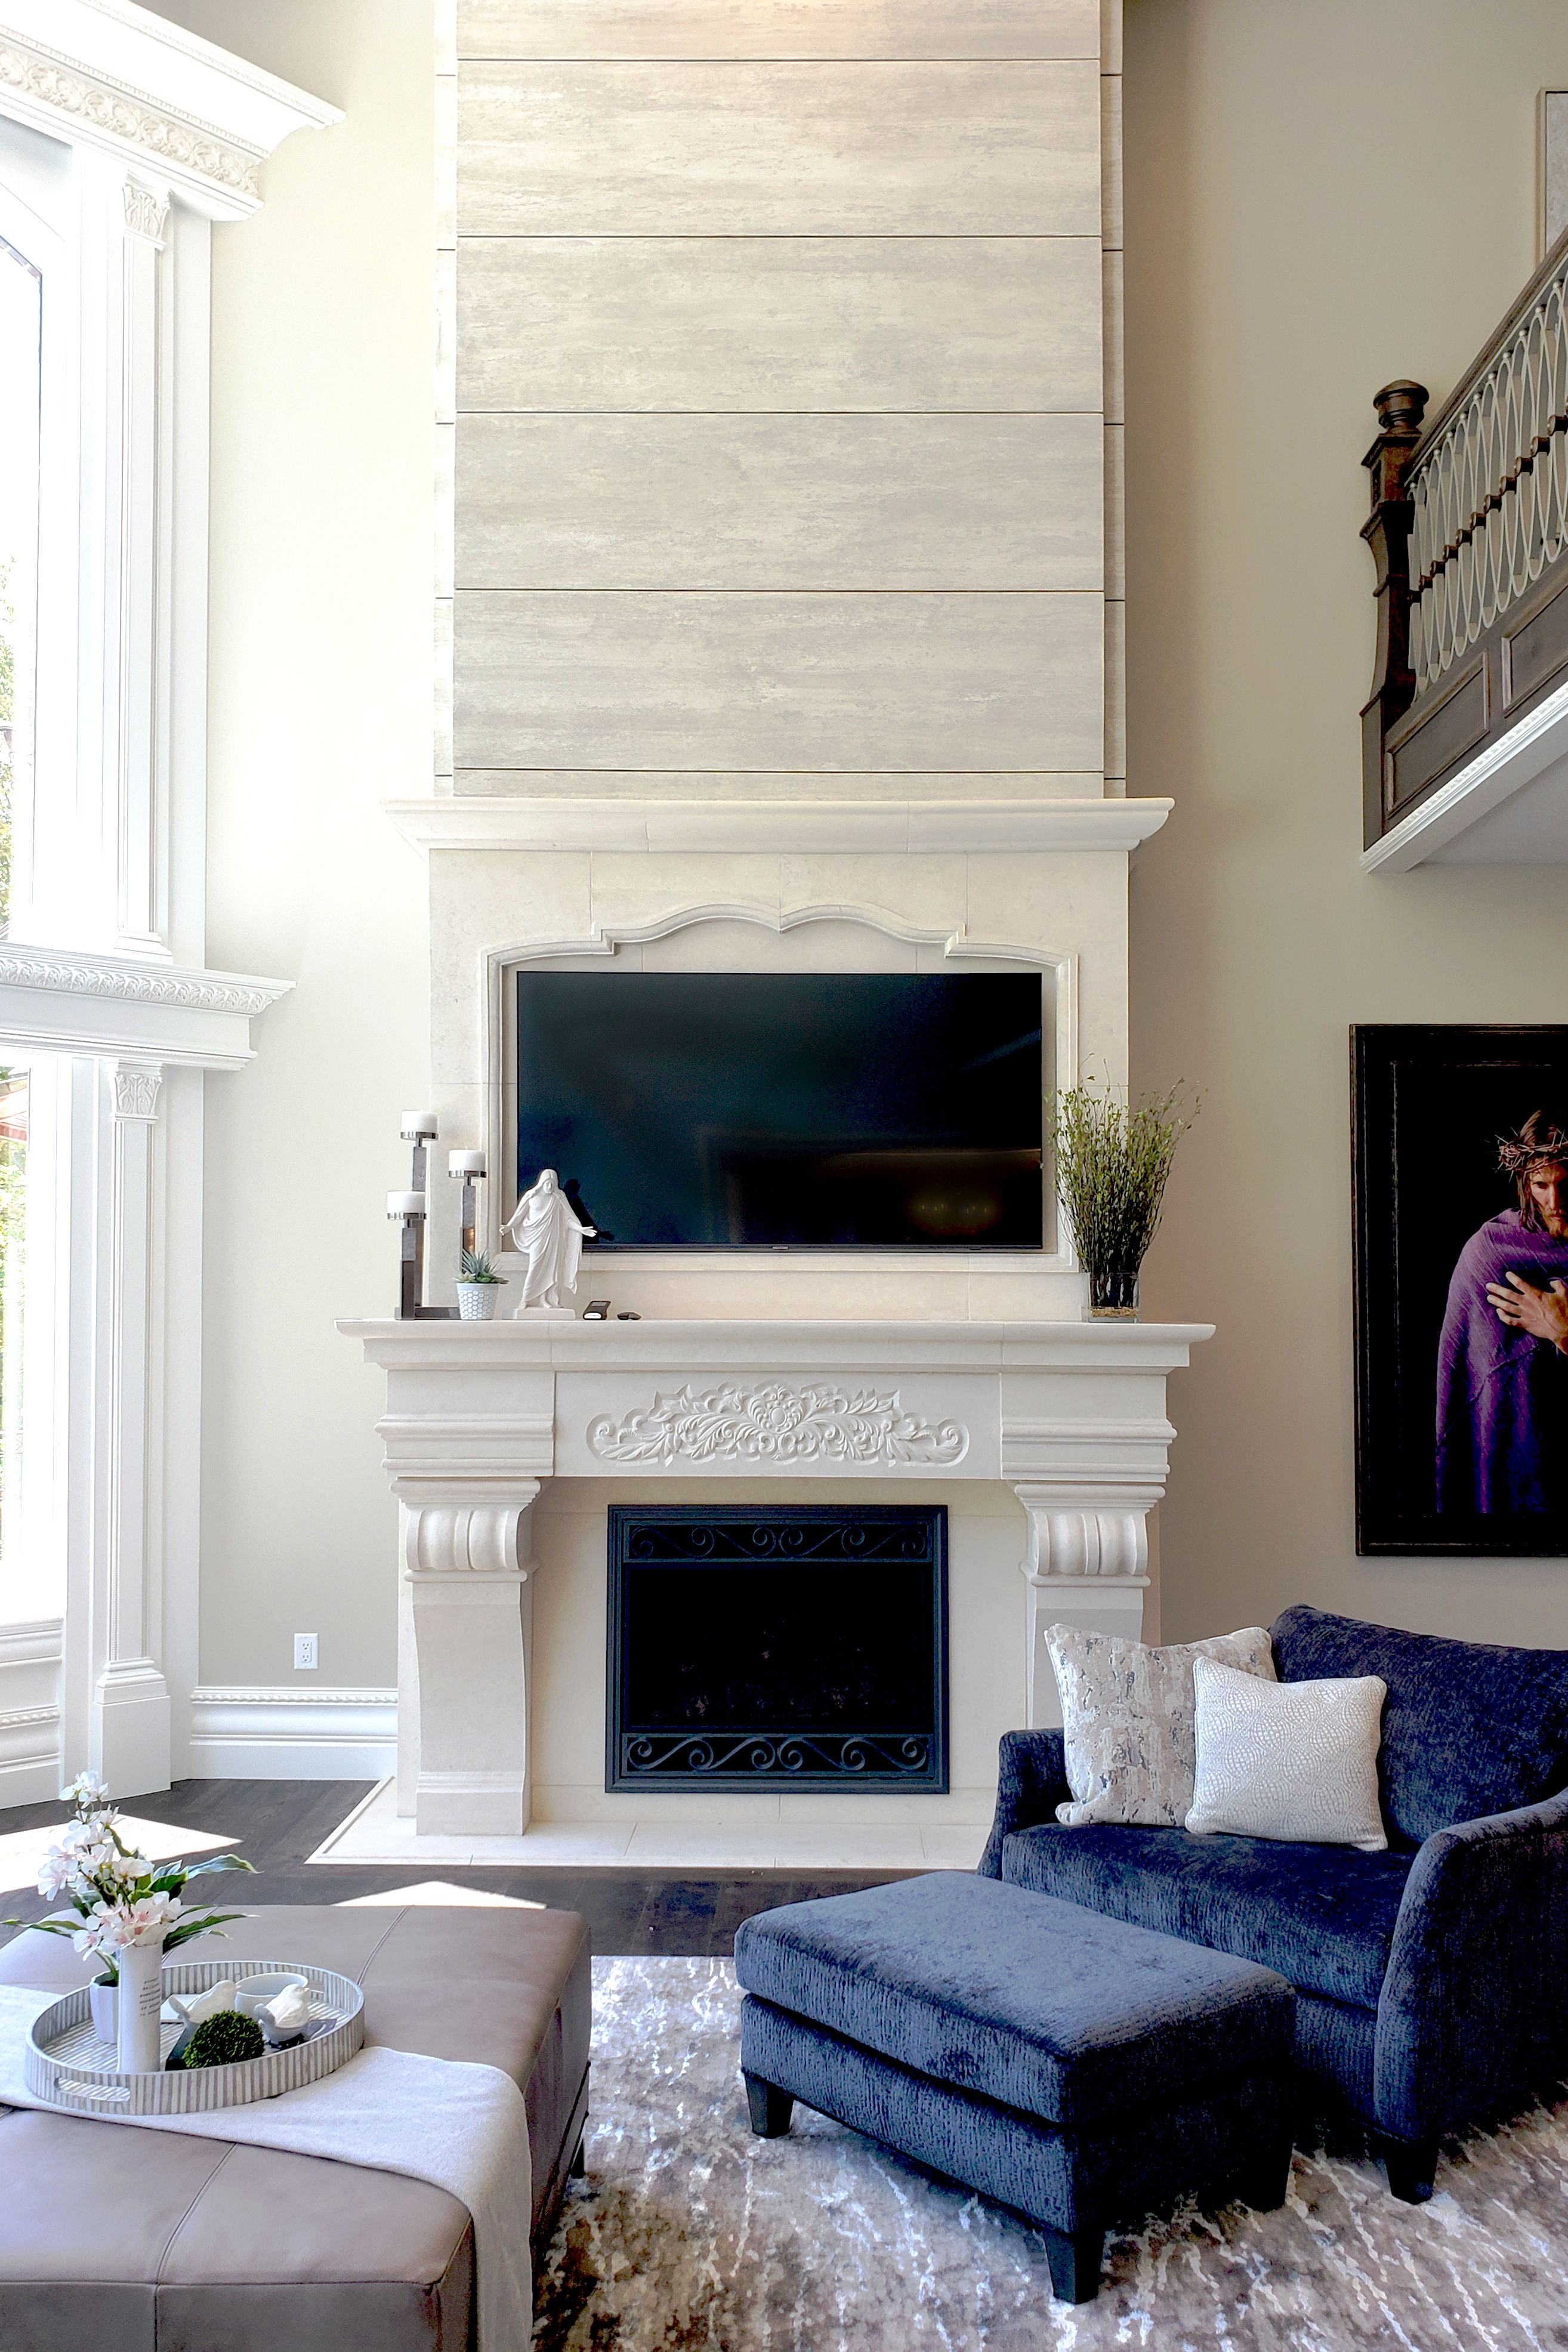 2020 Parade Of Homes Limestone Fireplace In Great Room In